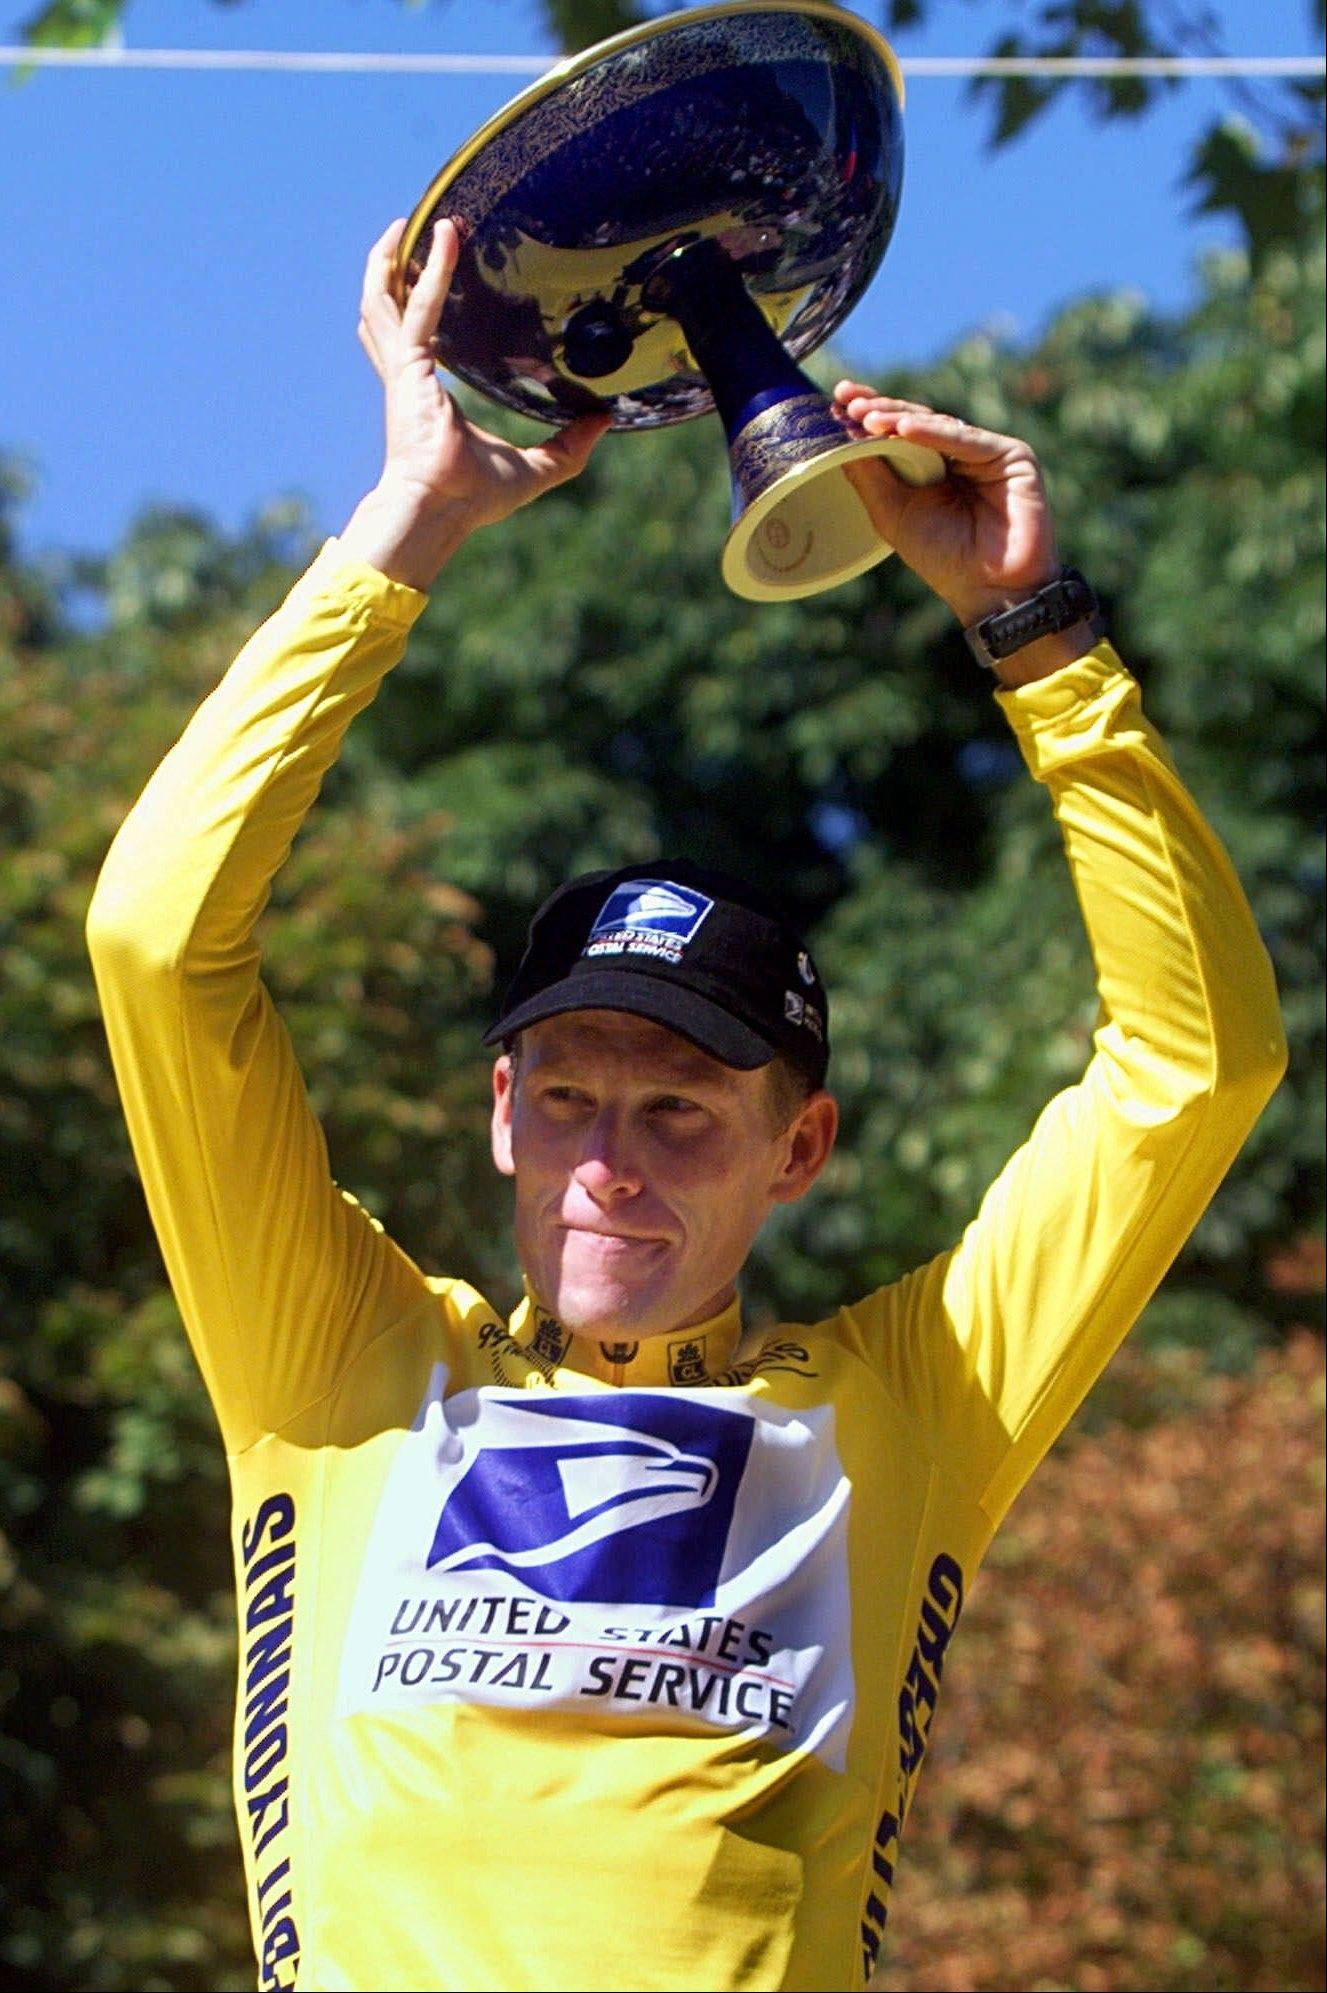 Lance Armstrong's 1999 Tour de France win was the first of his seven tainted titles.